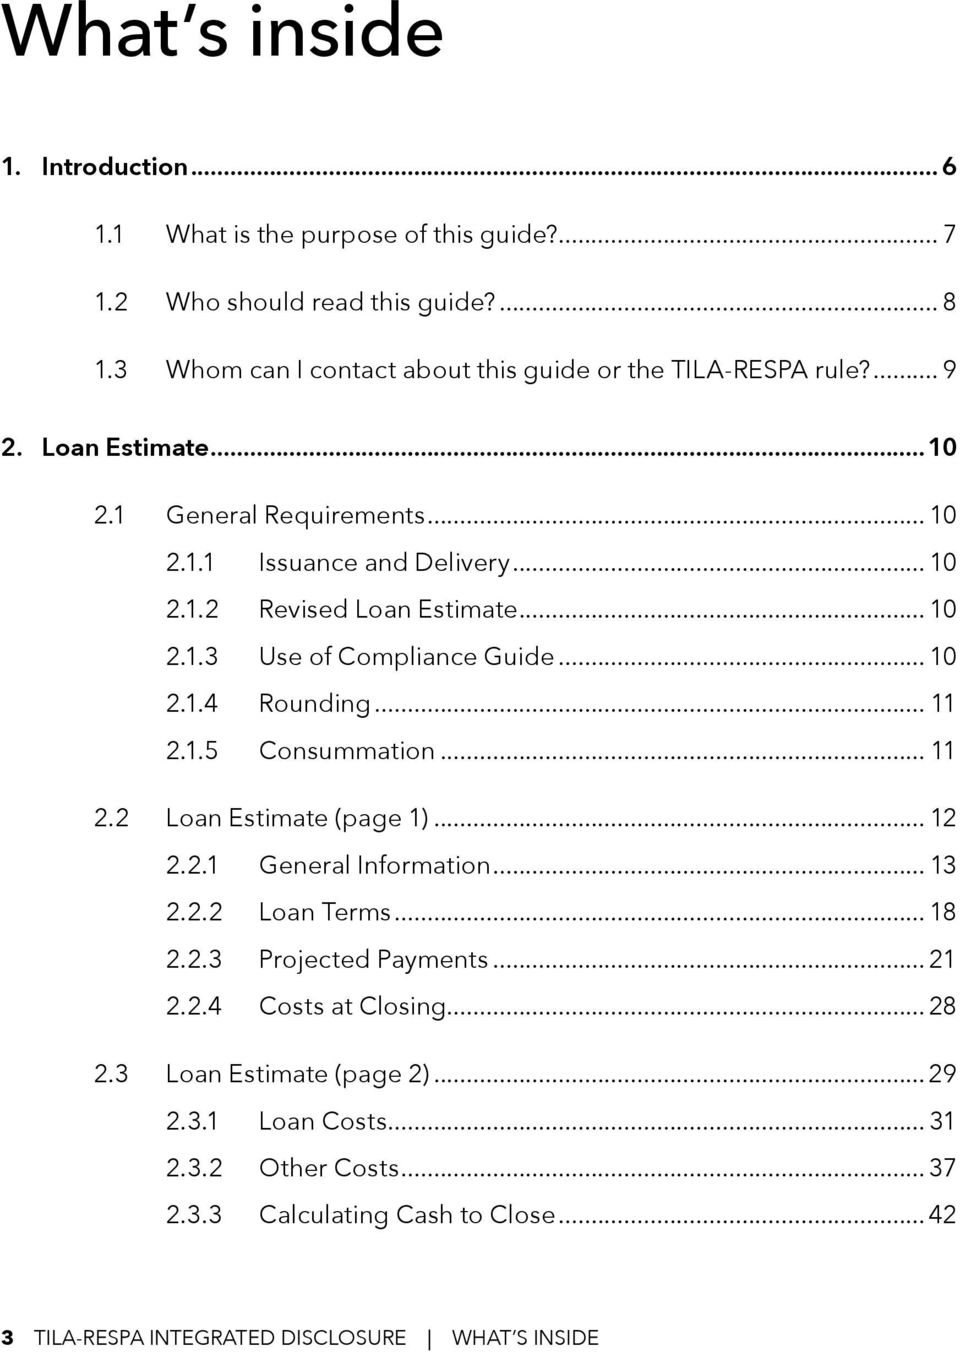 .. 10 2.1.3 Use of Compliance Guide... 10 2.1.4 Rounding... 11 2.1.5 Consummation... 11 2.2 Loan Estimate (page 1)... 12 2.2.1 General Information... 13 2.2.2 Loan Terms.